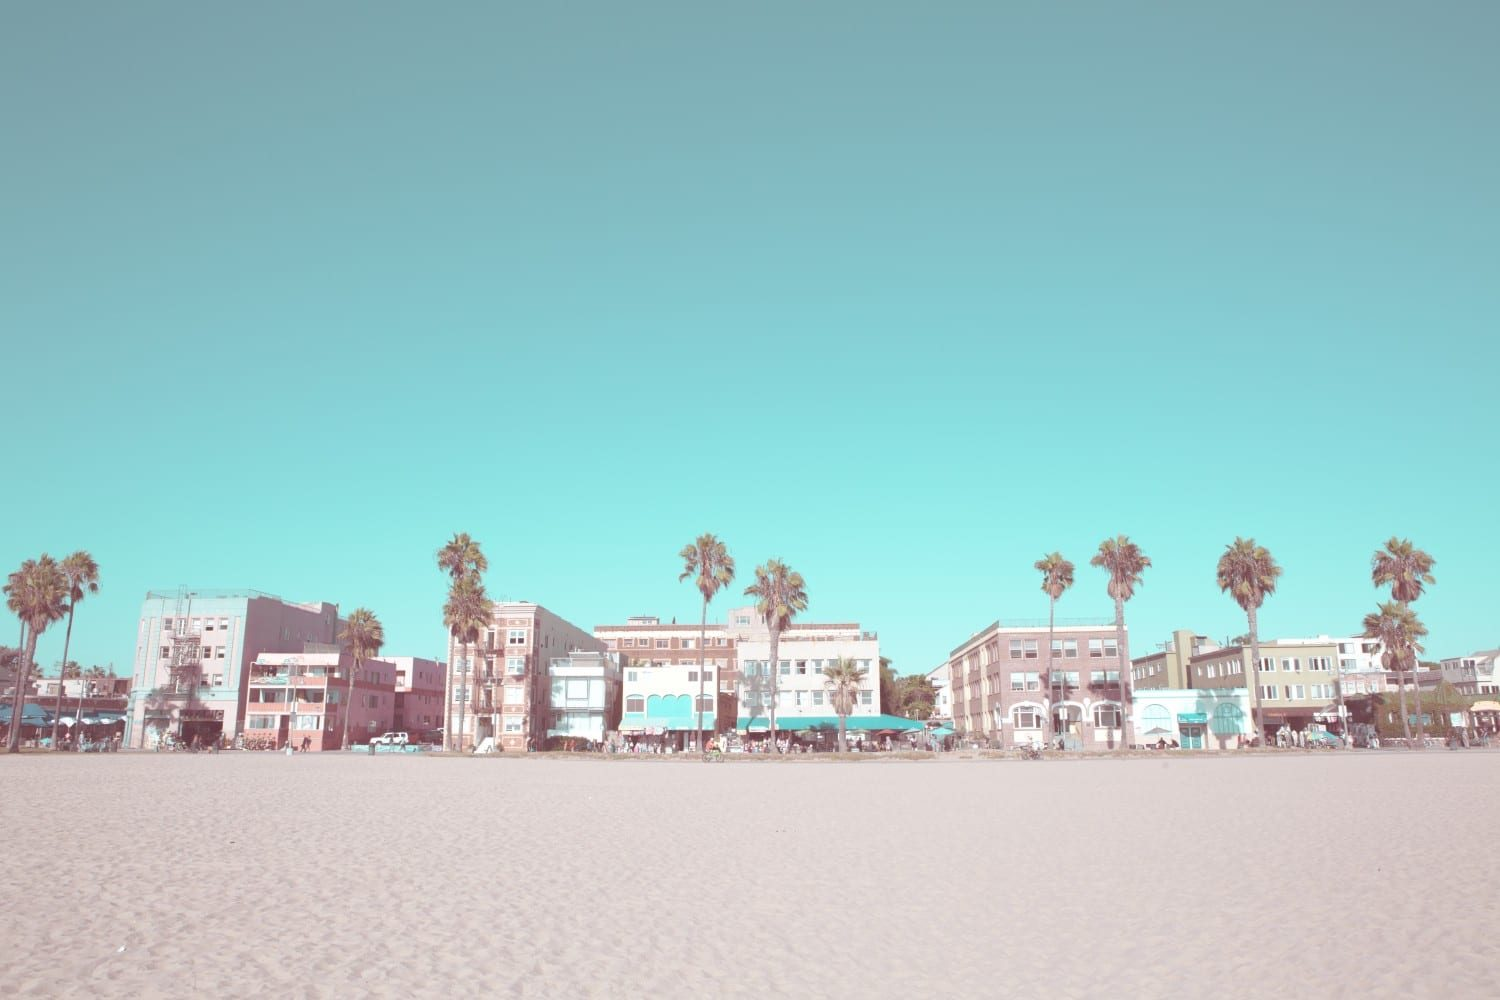 Venice Beach - One of the Cool Places in Los Angeles